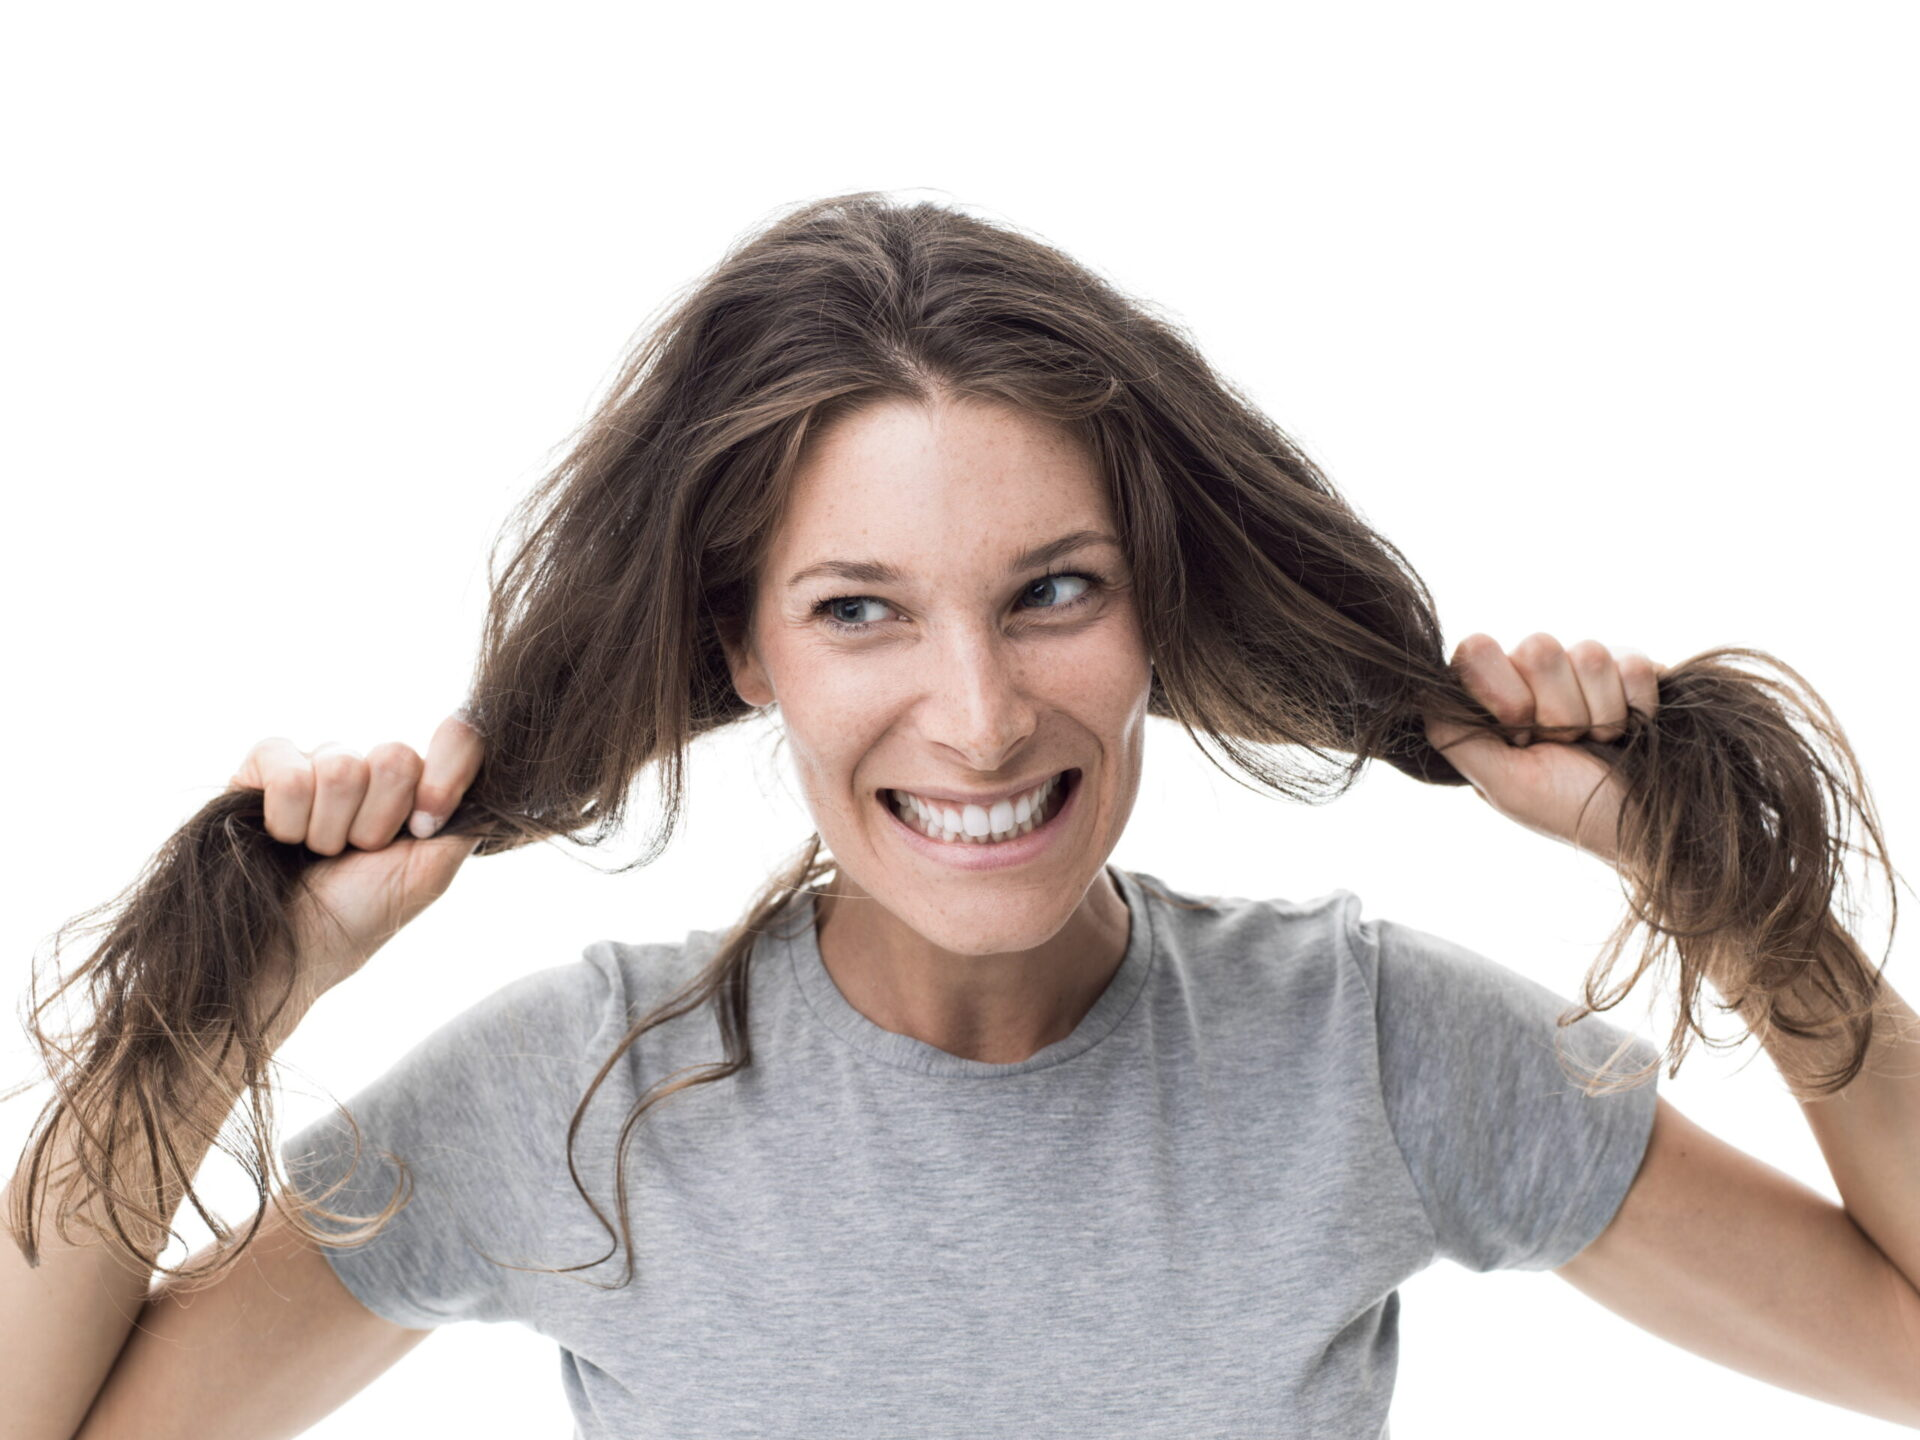 Angry woman having a bad hair day, she is pulling her messy and tangled hair